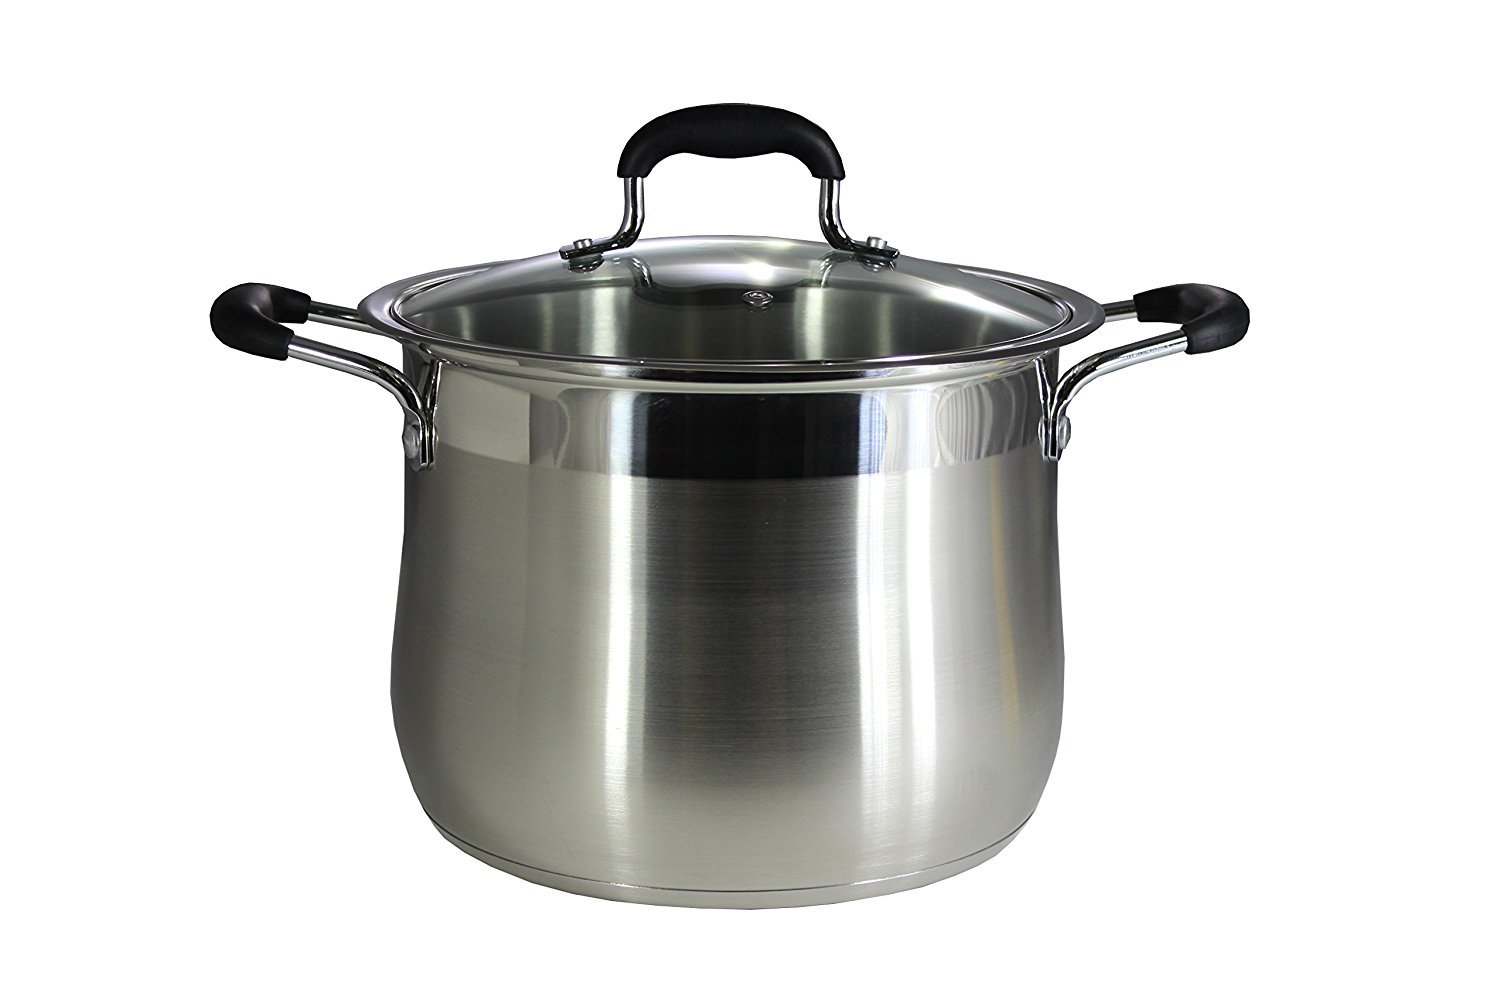 Concord Stainless Steel Stock Pot with Glass Lid (Induction Compatible) ((7 QT) Concord Cookware COMIN18JU070086